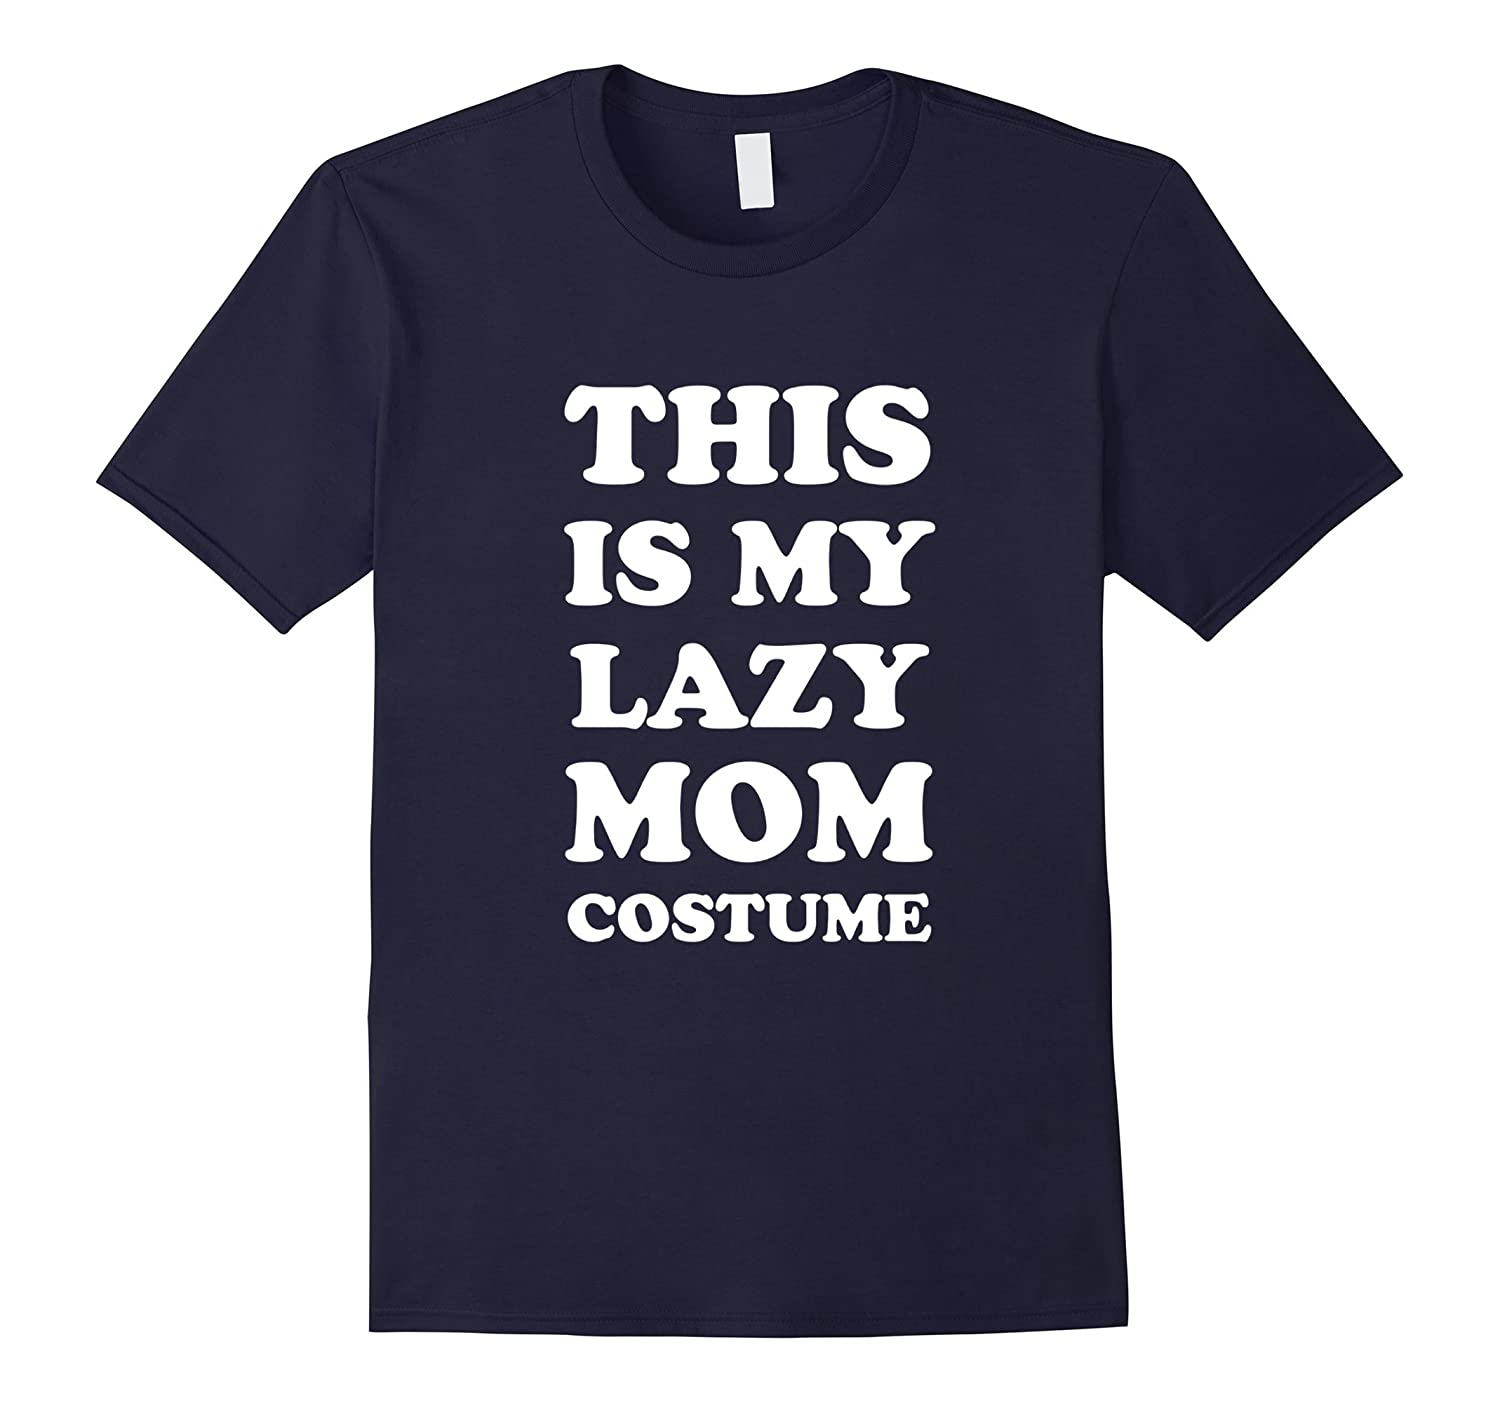 Best Seller:This is my lazy mom new latest funny meme-Art